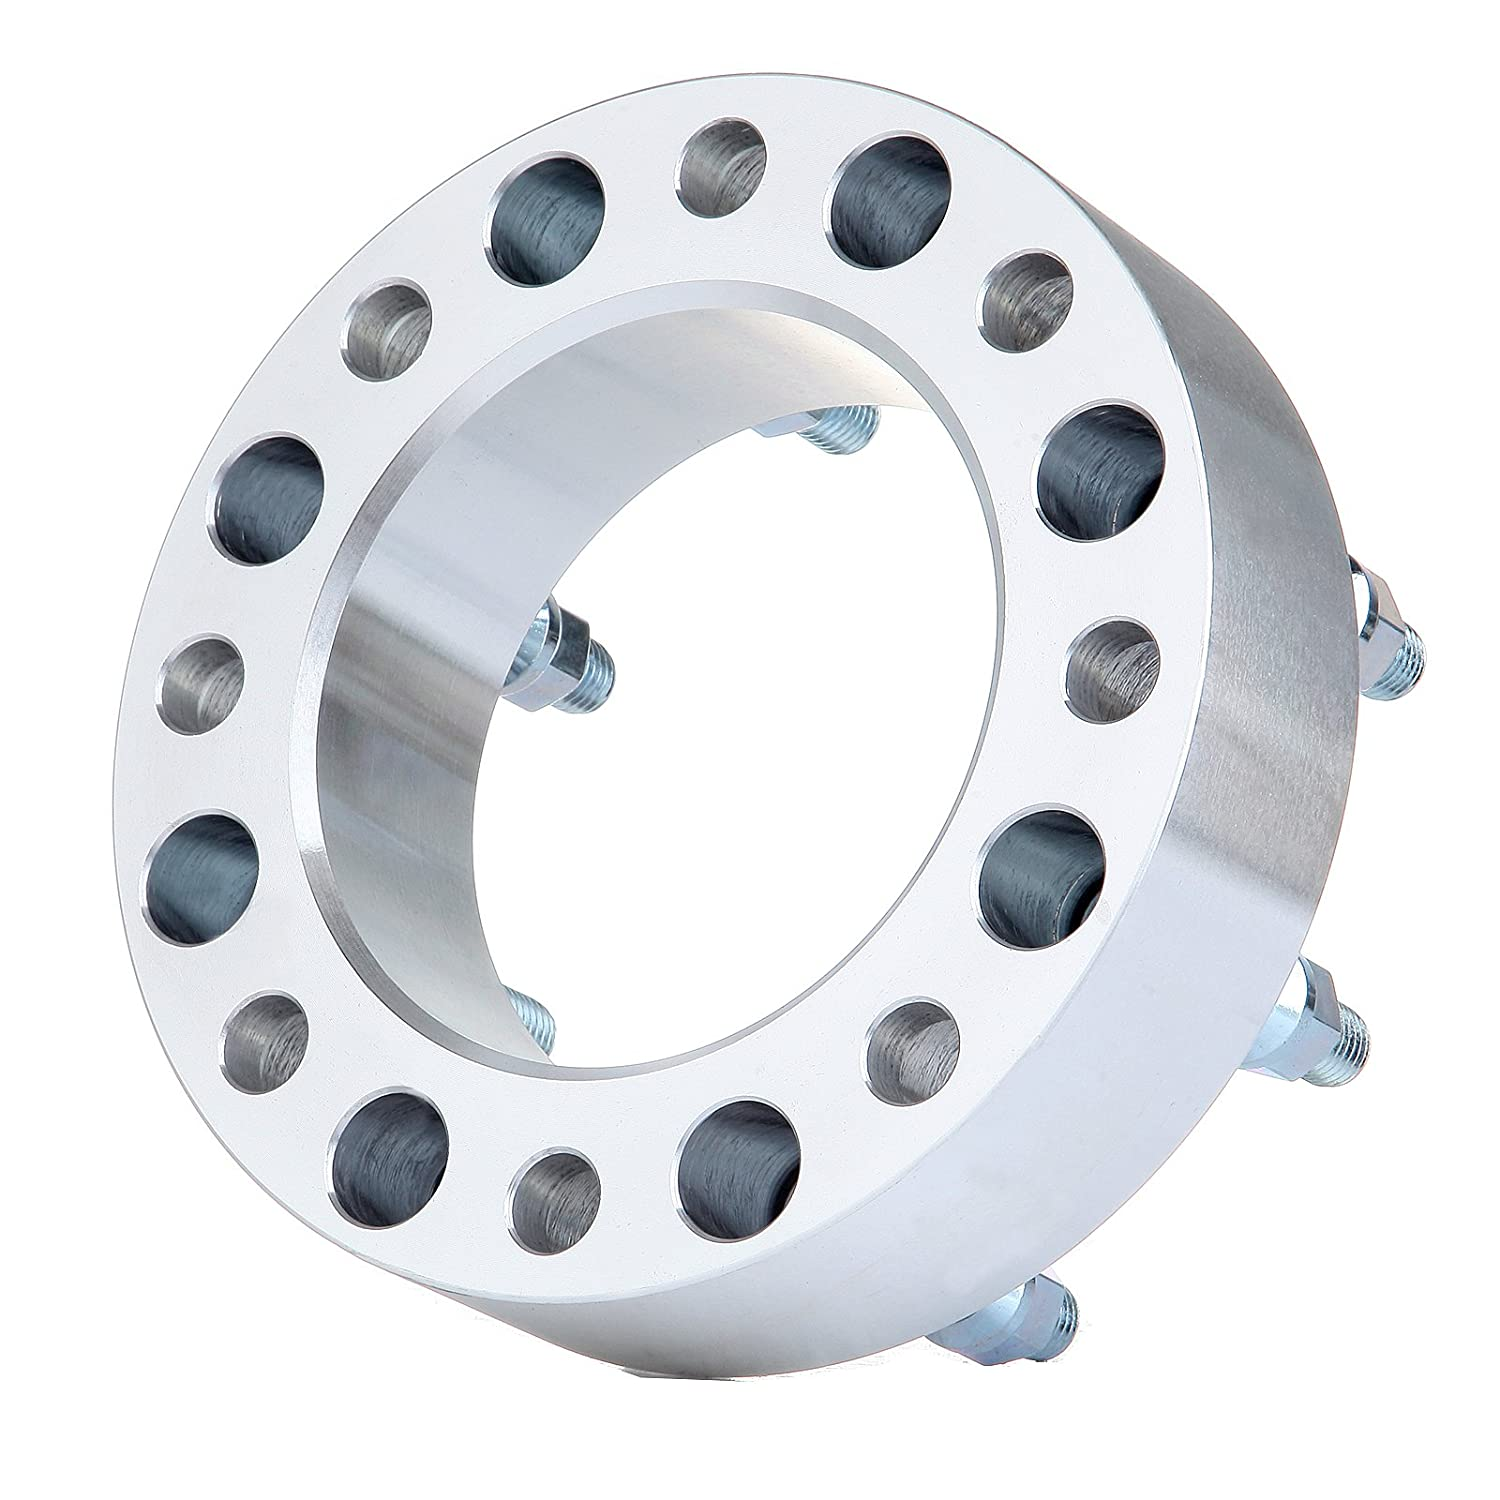 ECCPP 8X170 Wheel Spacers 2 50mm 8x170 Lug Pattern 14x2 Studs For 1999-2004 Ford F-350//Ford F-250Super Duty